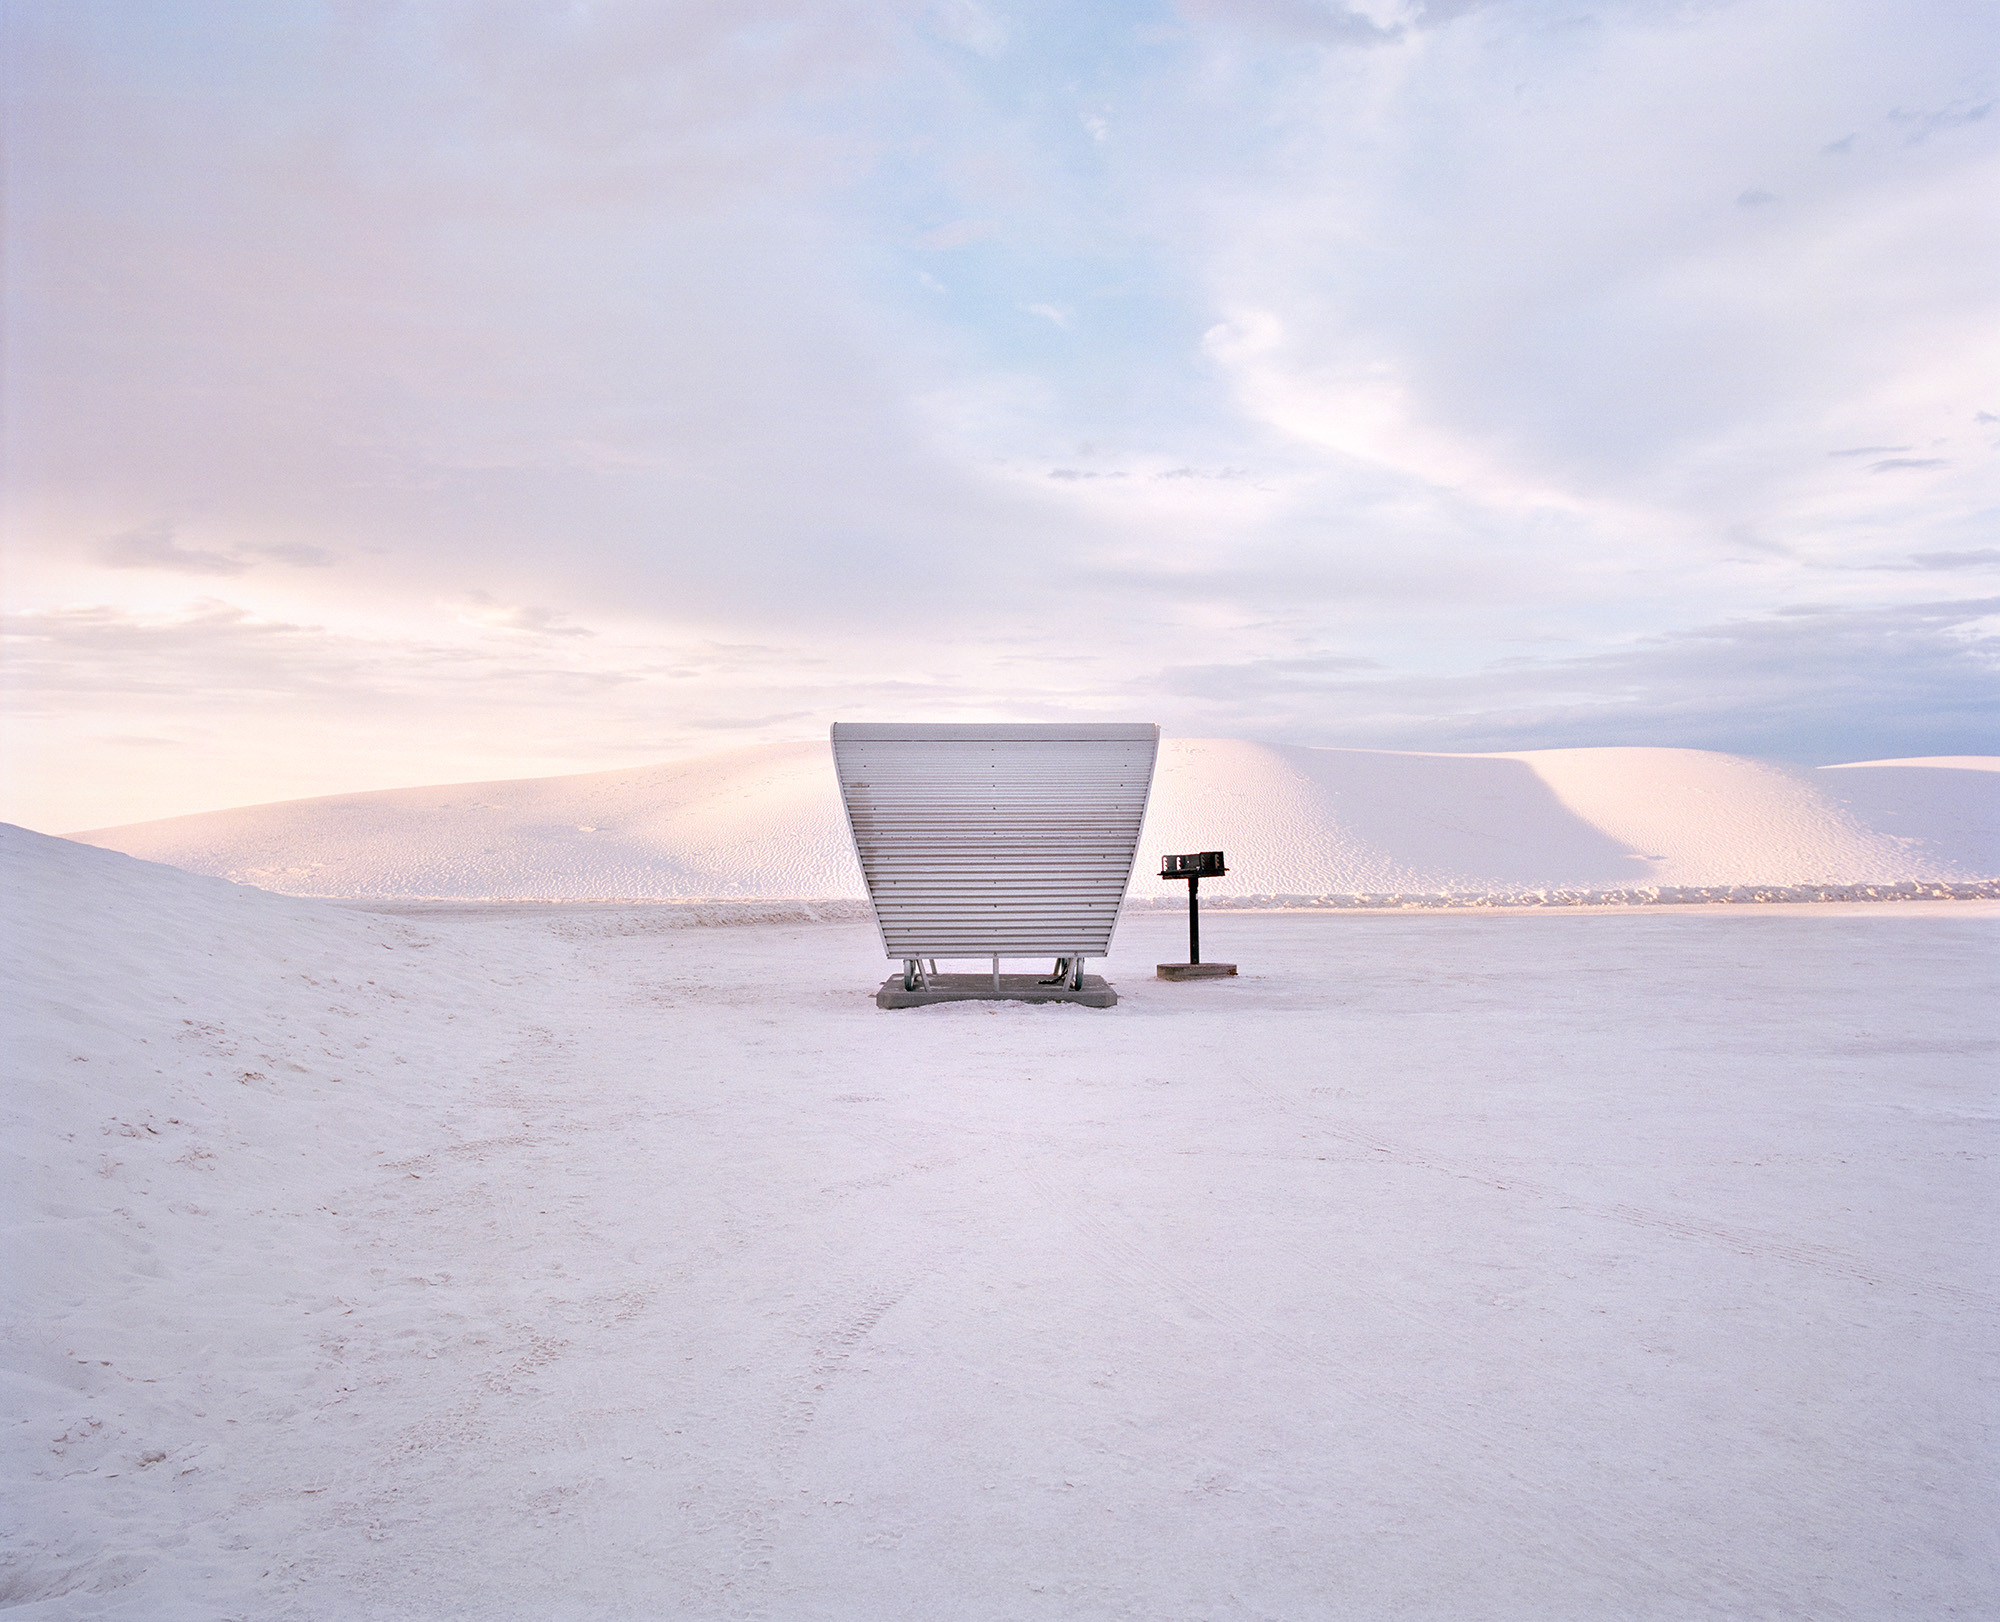 The Last Stop: Documenting North America's Disappearing Rest Areas, White Sands National Monument, New Mexico. Image © Ryann Ford